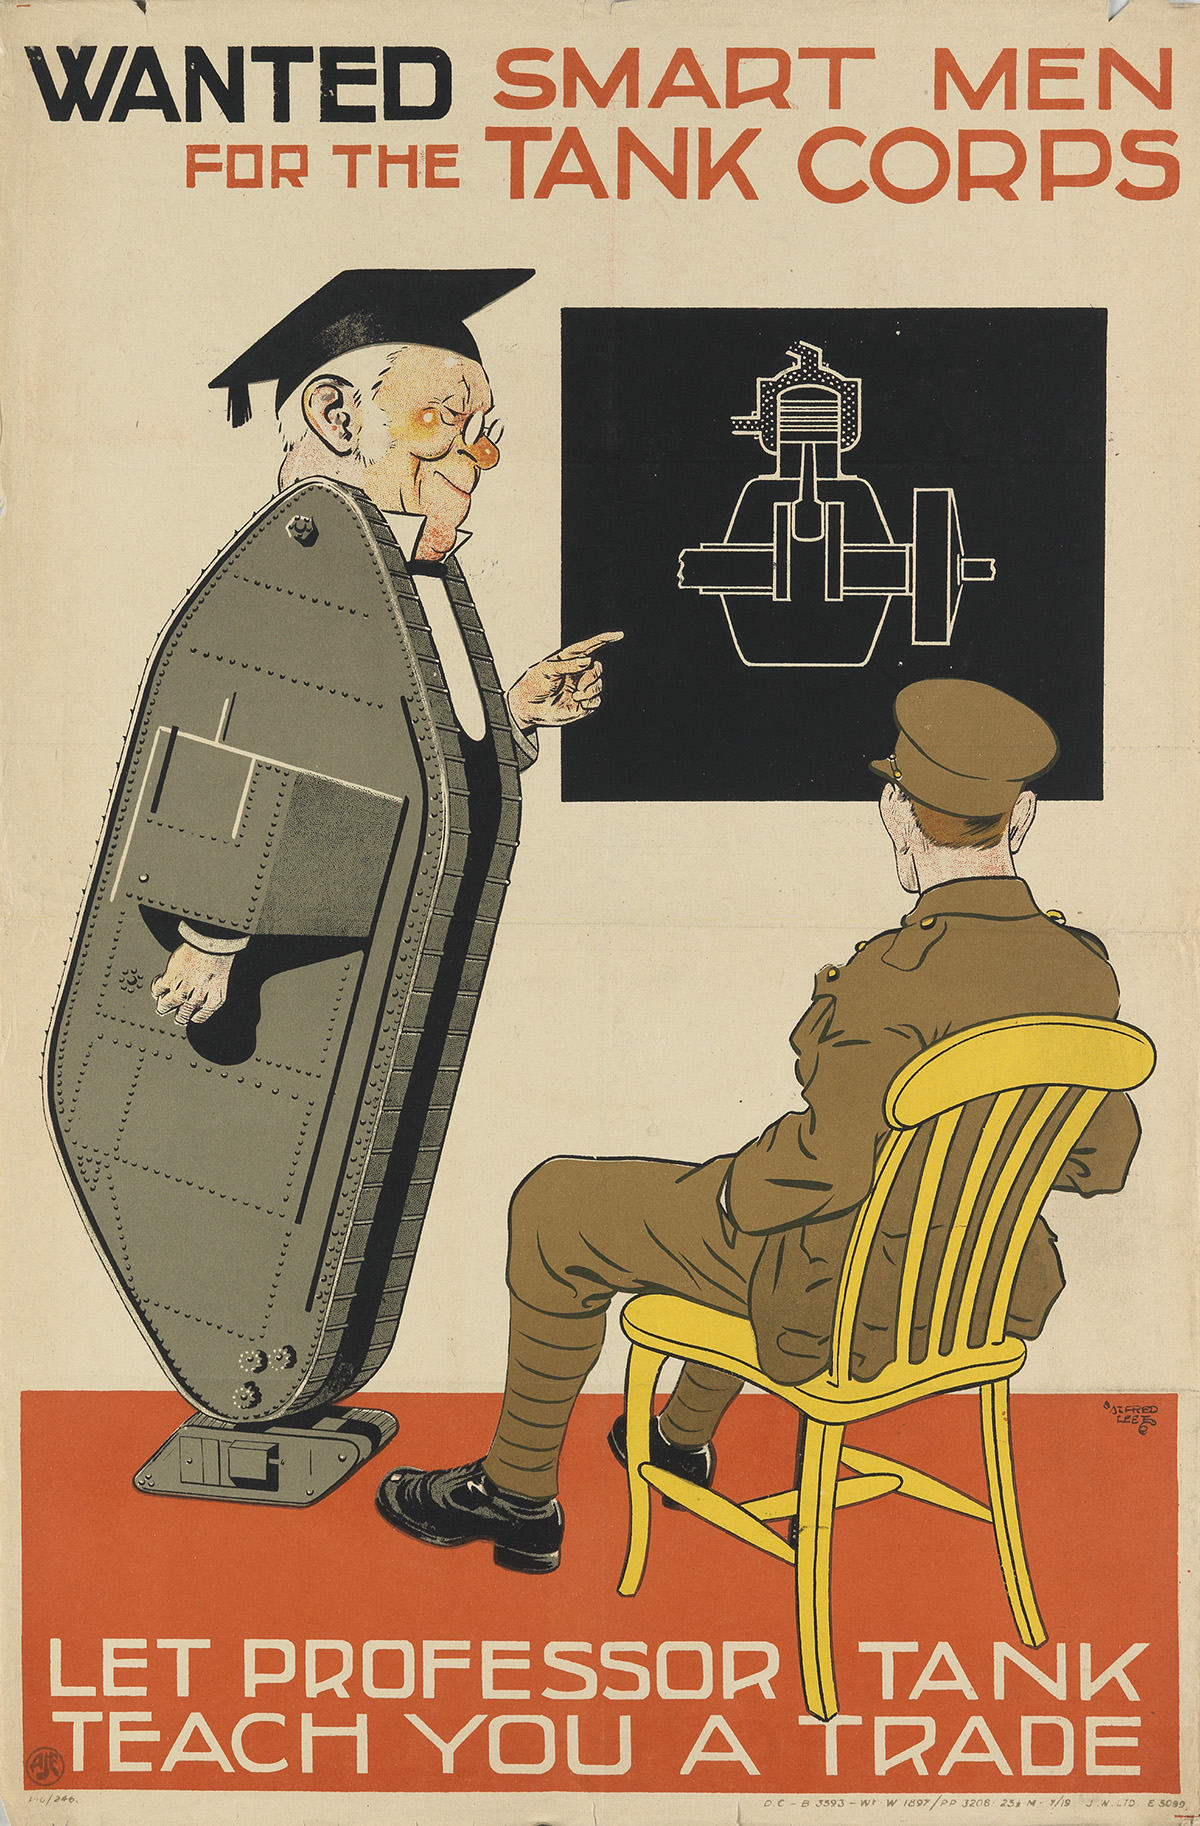 ALFRED LEETE (1882-1933). WANTED SMART MEN FOR THE TANK CORPS. 1919. 30x20 inches, 76x50 cm. J.W. Ltd. [London.]